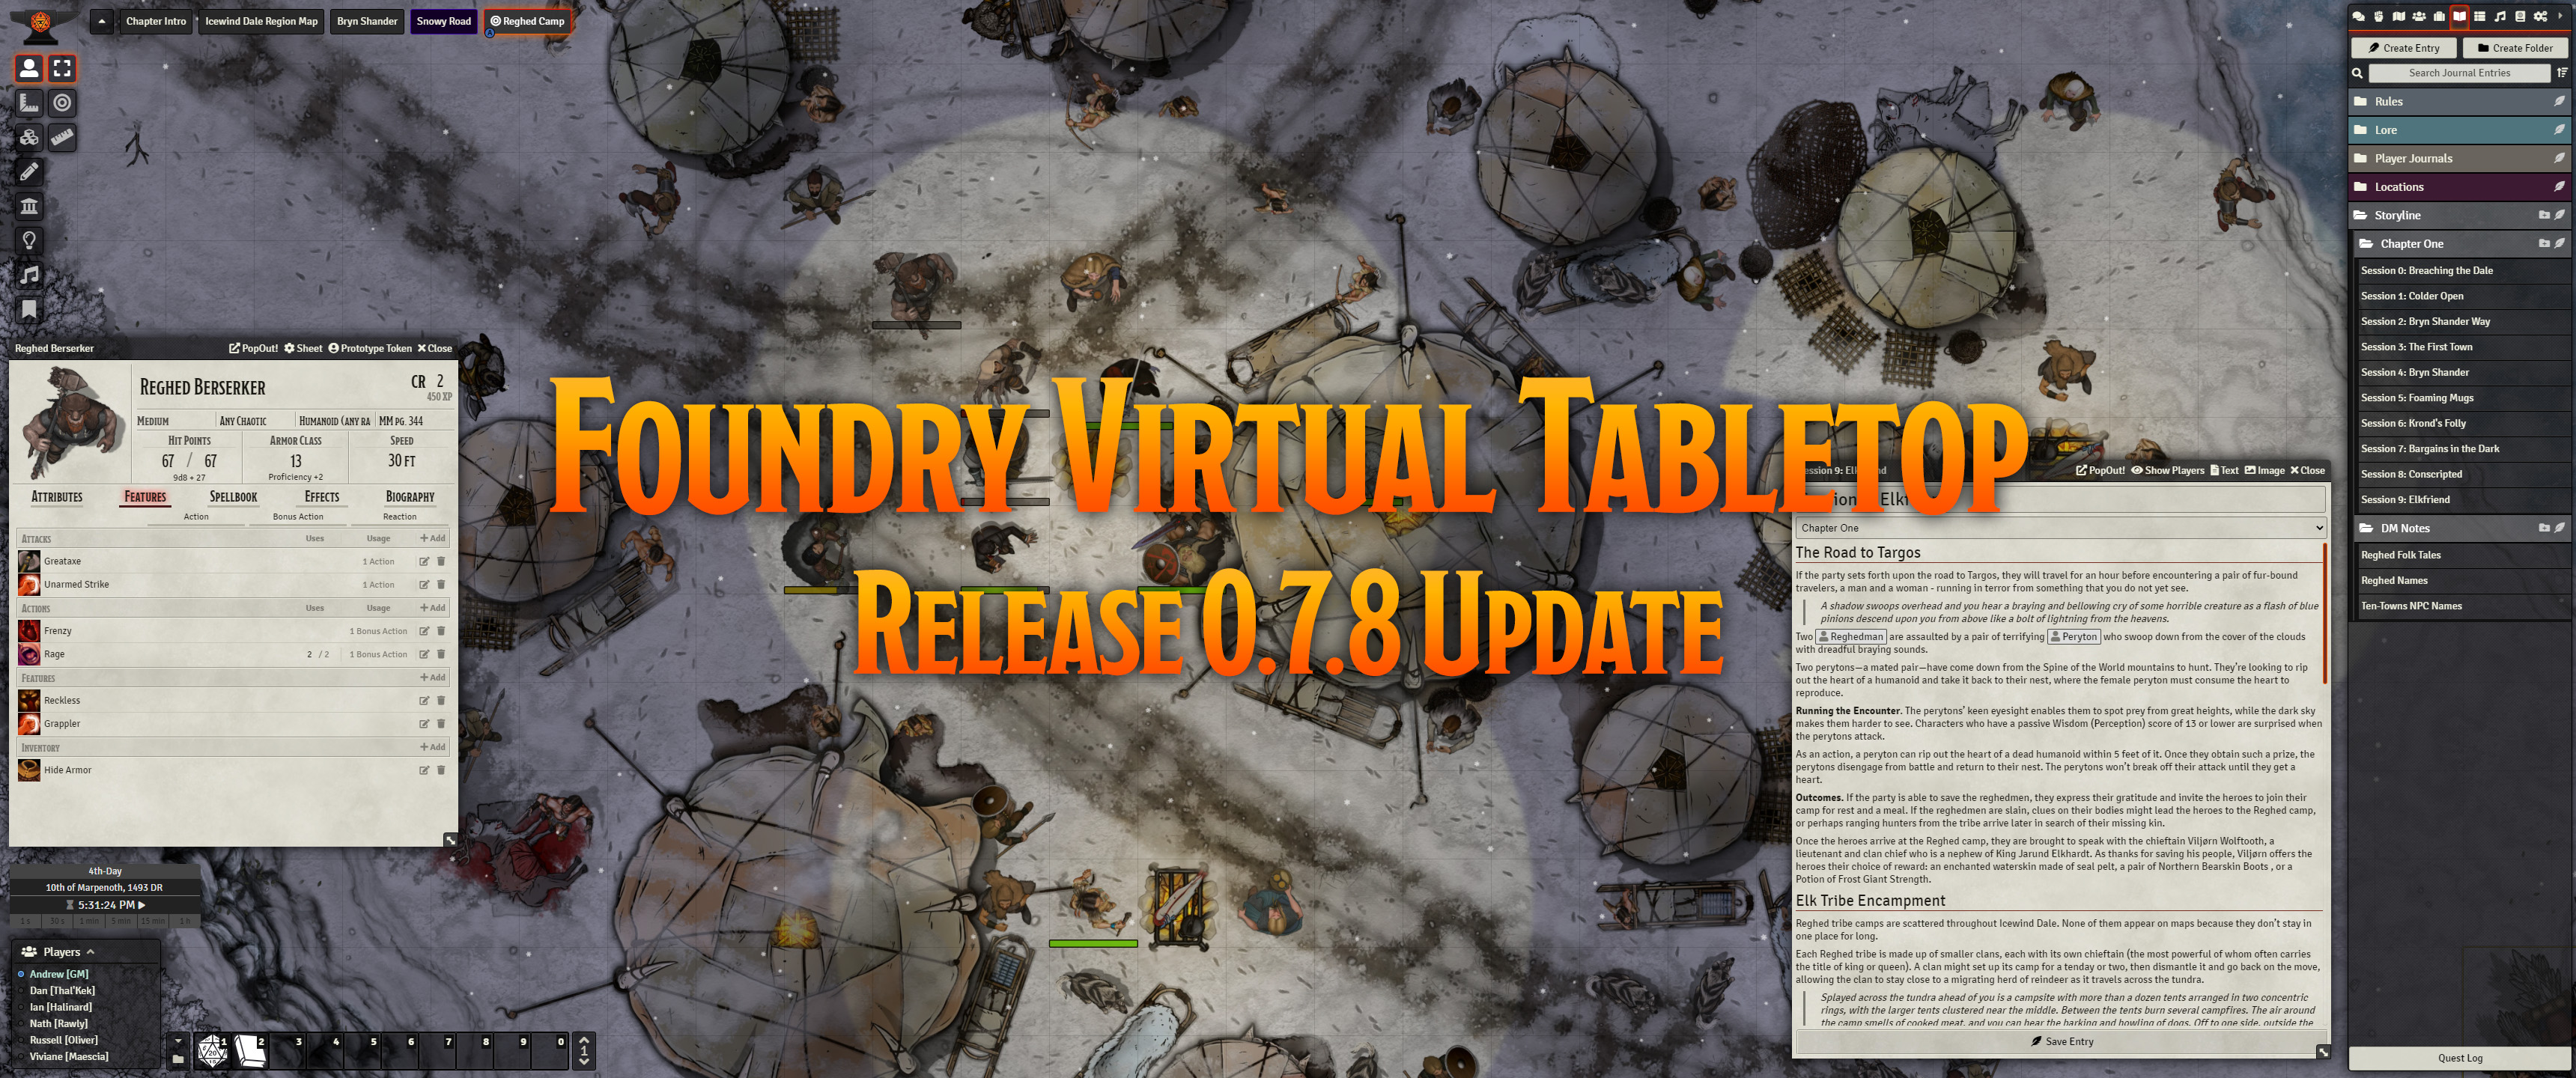 Release Notes for the Foundry Virtual Tabletop 0.7.8 update version